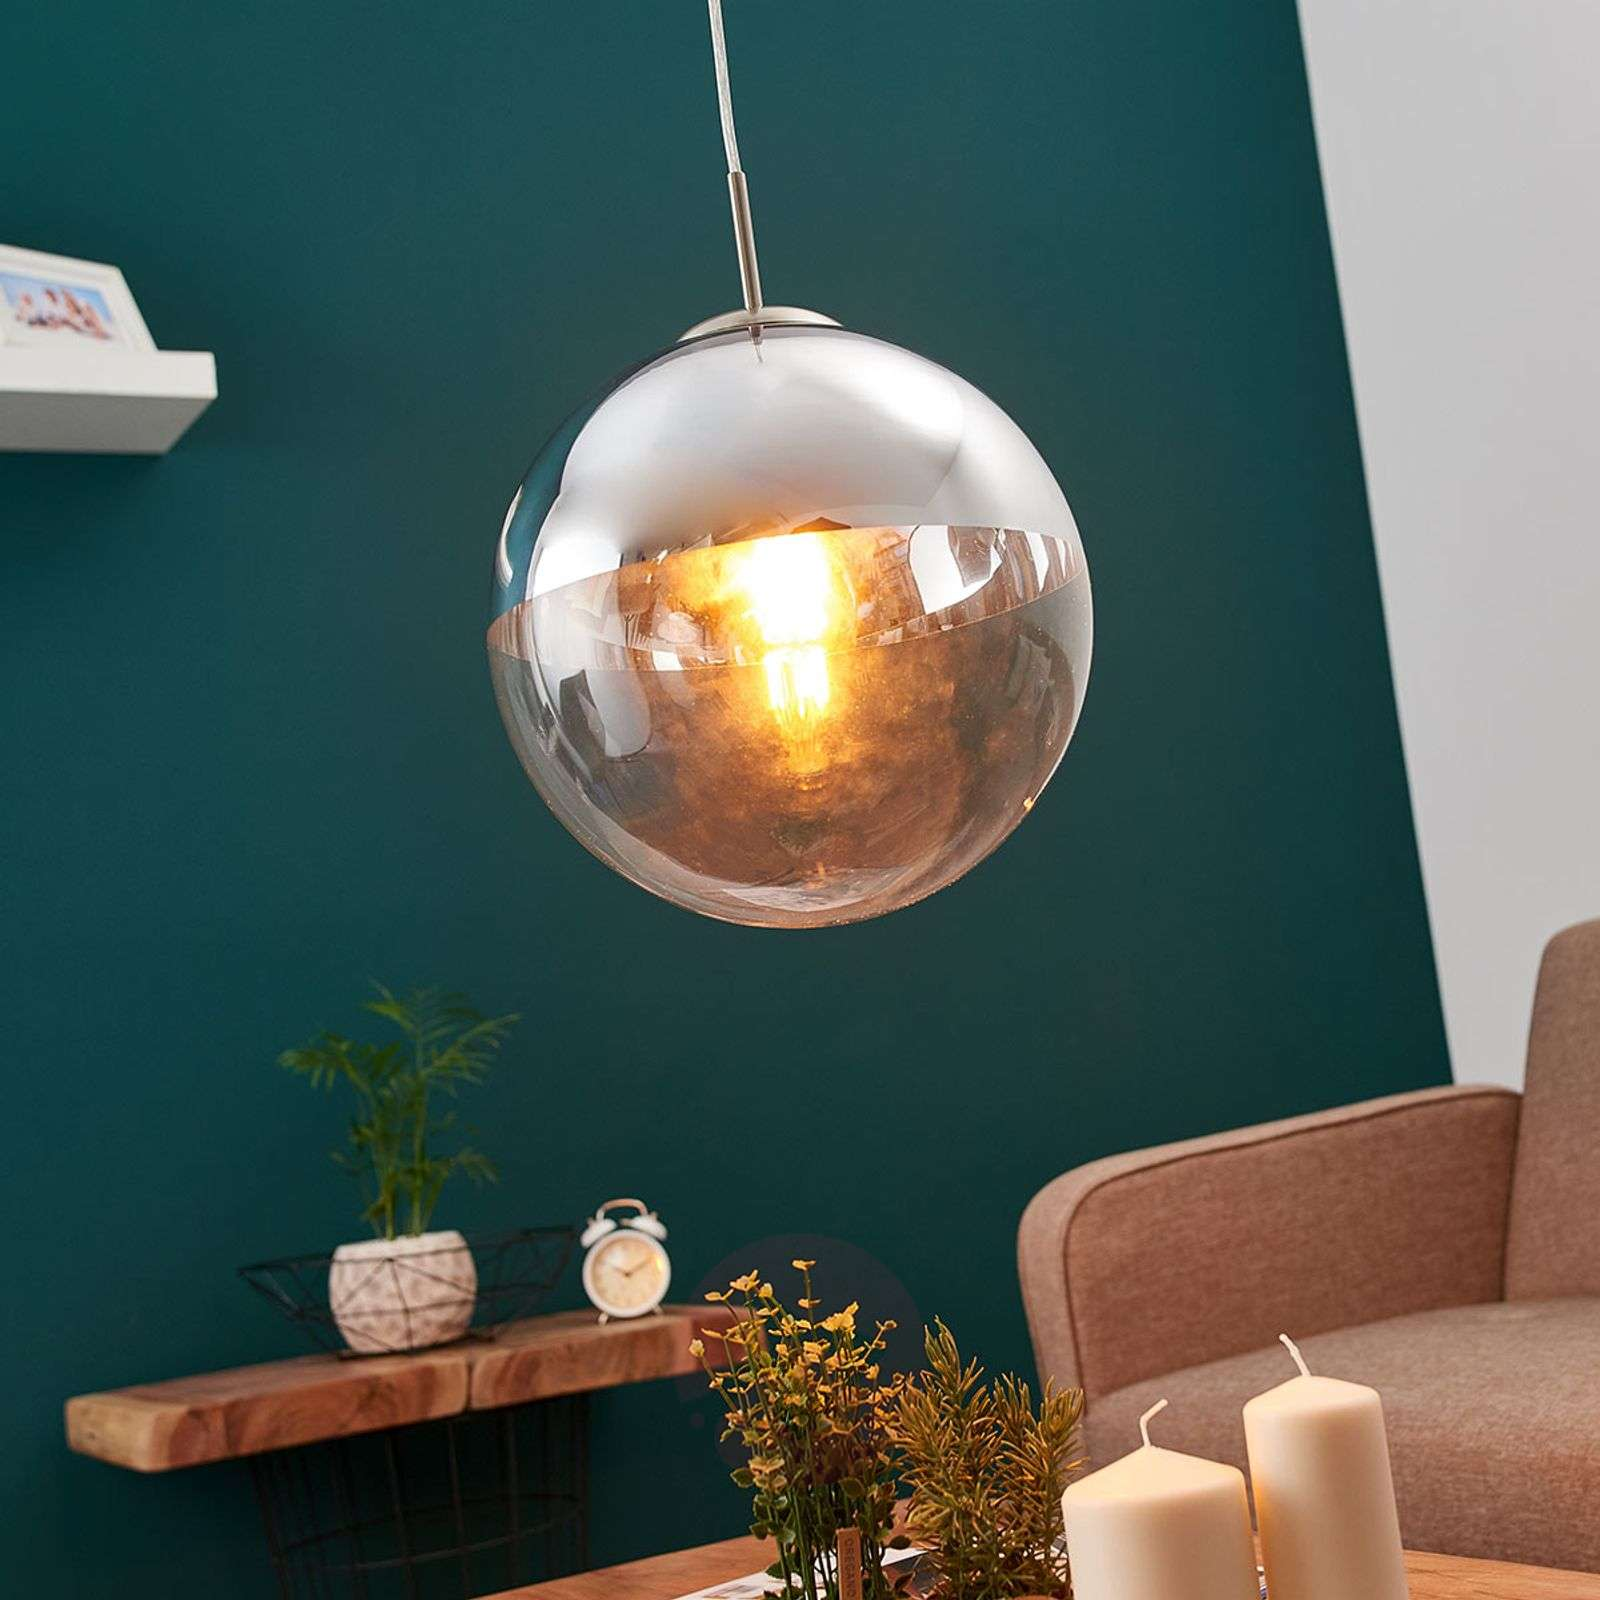 Pendant Light Ravena With A Glass Sphere One Bulb